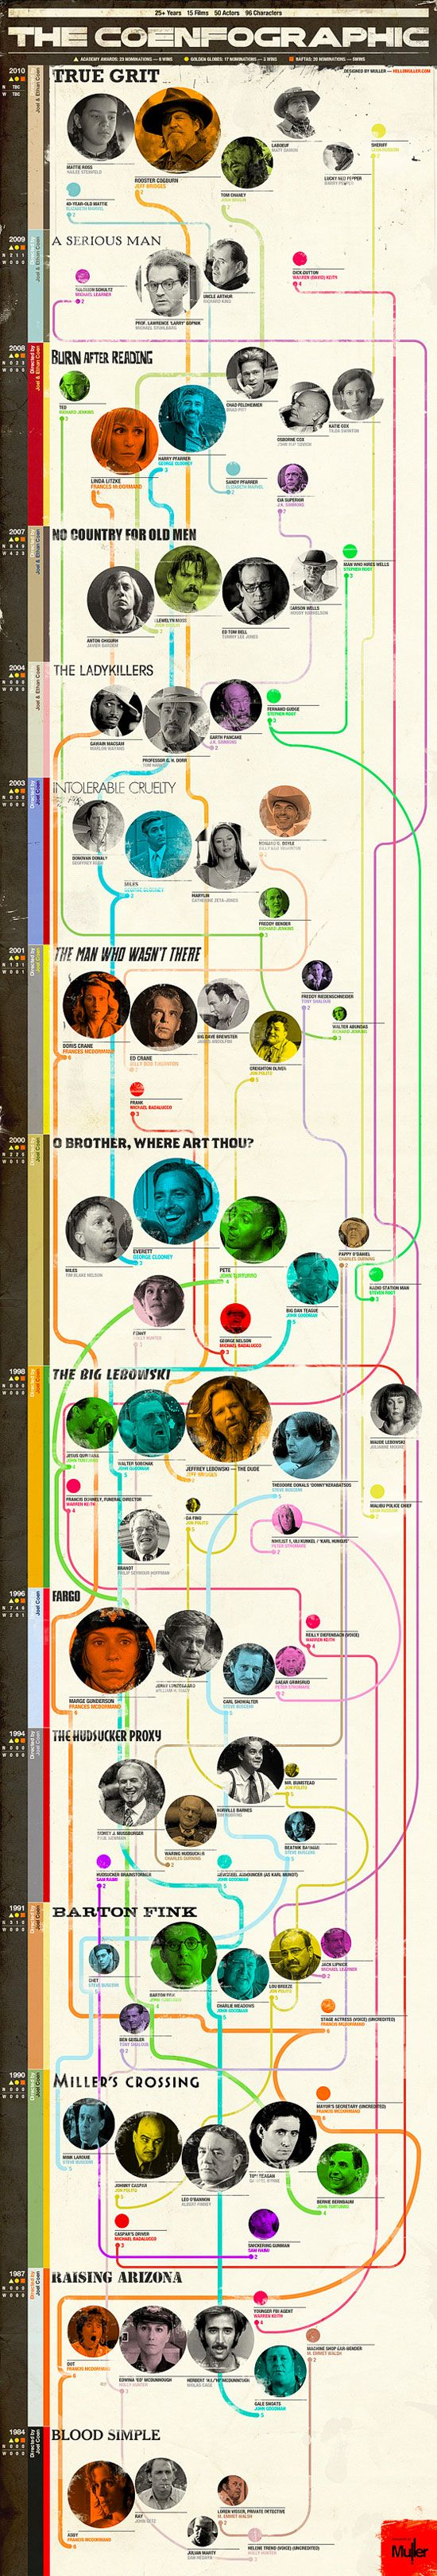 Coen Brother films: Film, Info Graphic, Brothers Infographic, Coenfographic, Brothers Movies, Actor, Coen Bros, Infographics